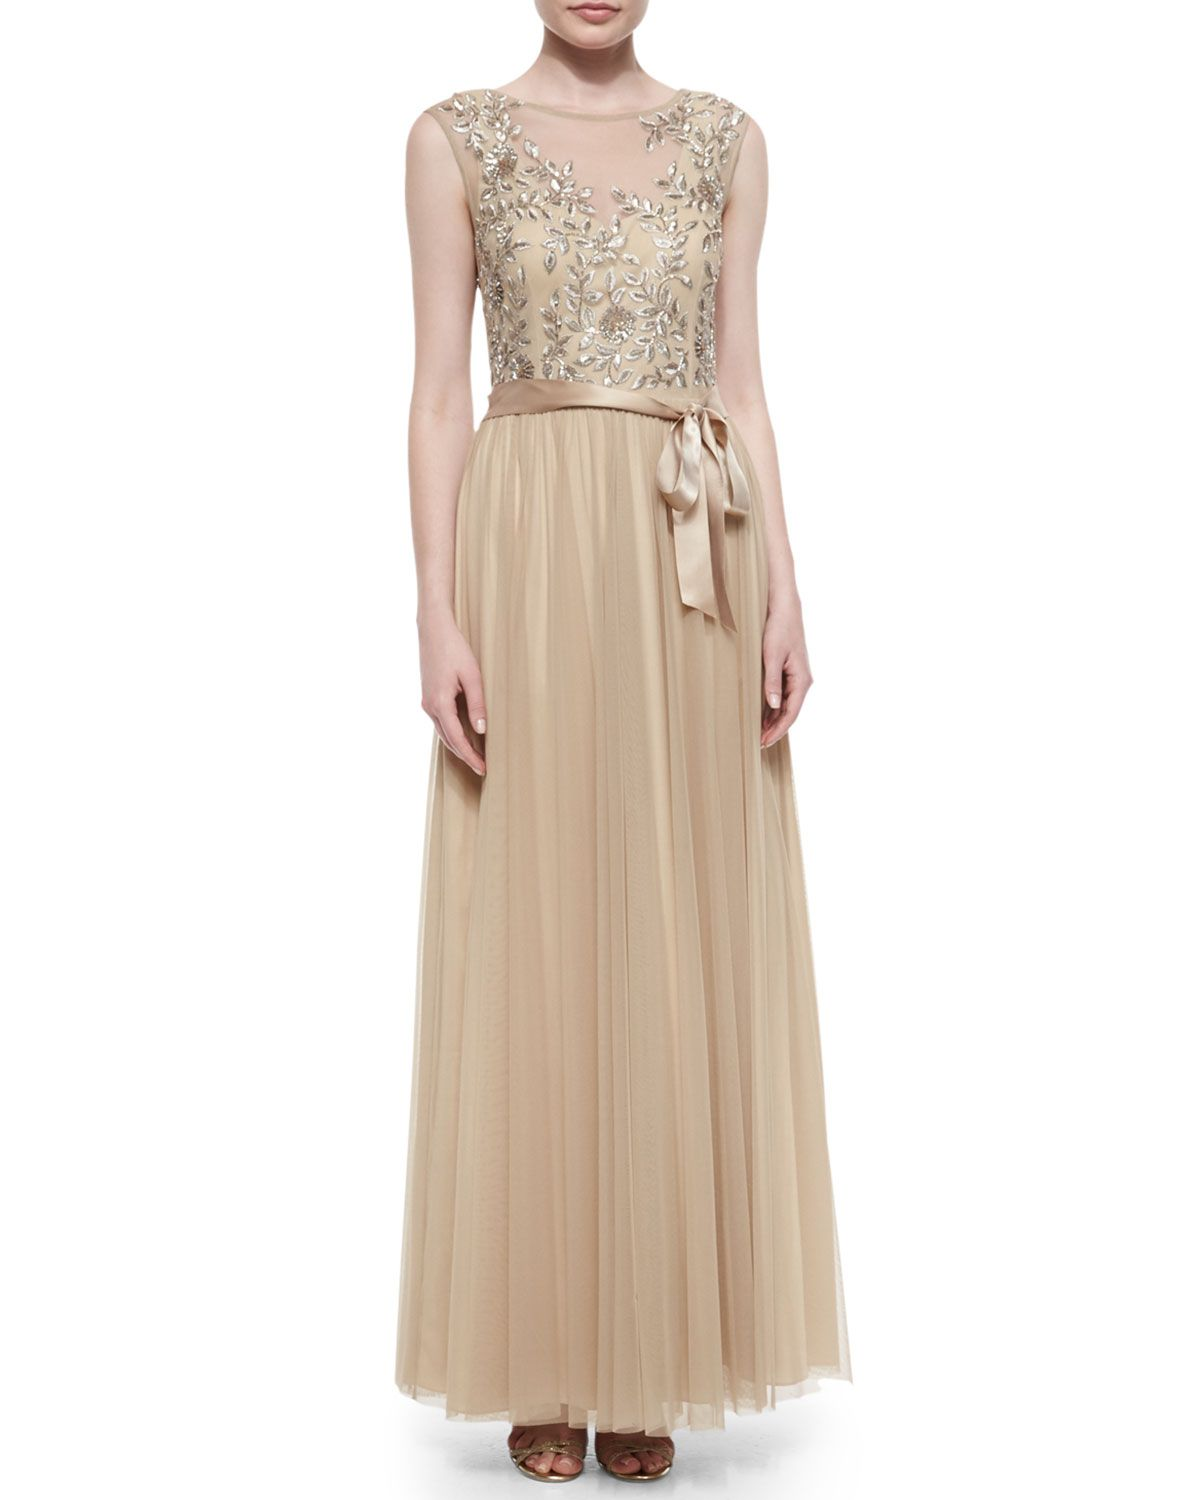 Aidan mattox embellished tulle capsleeve gown light gold dress